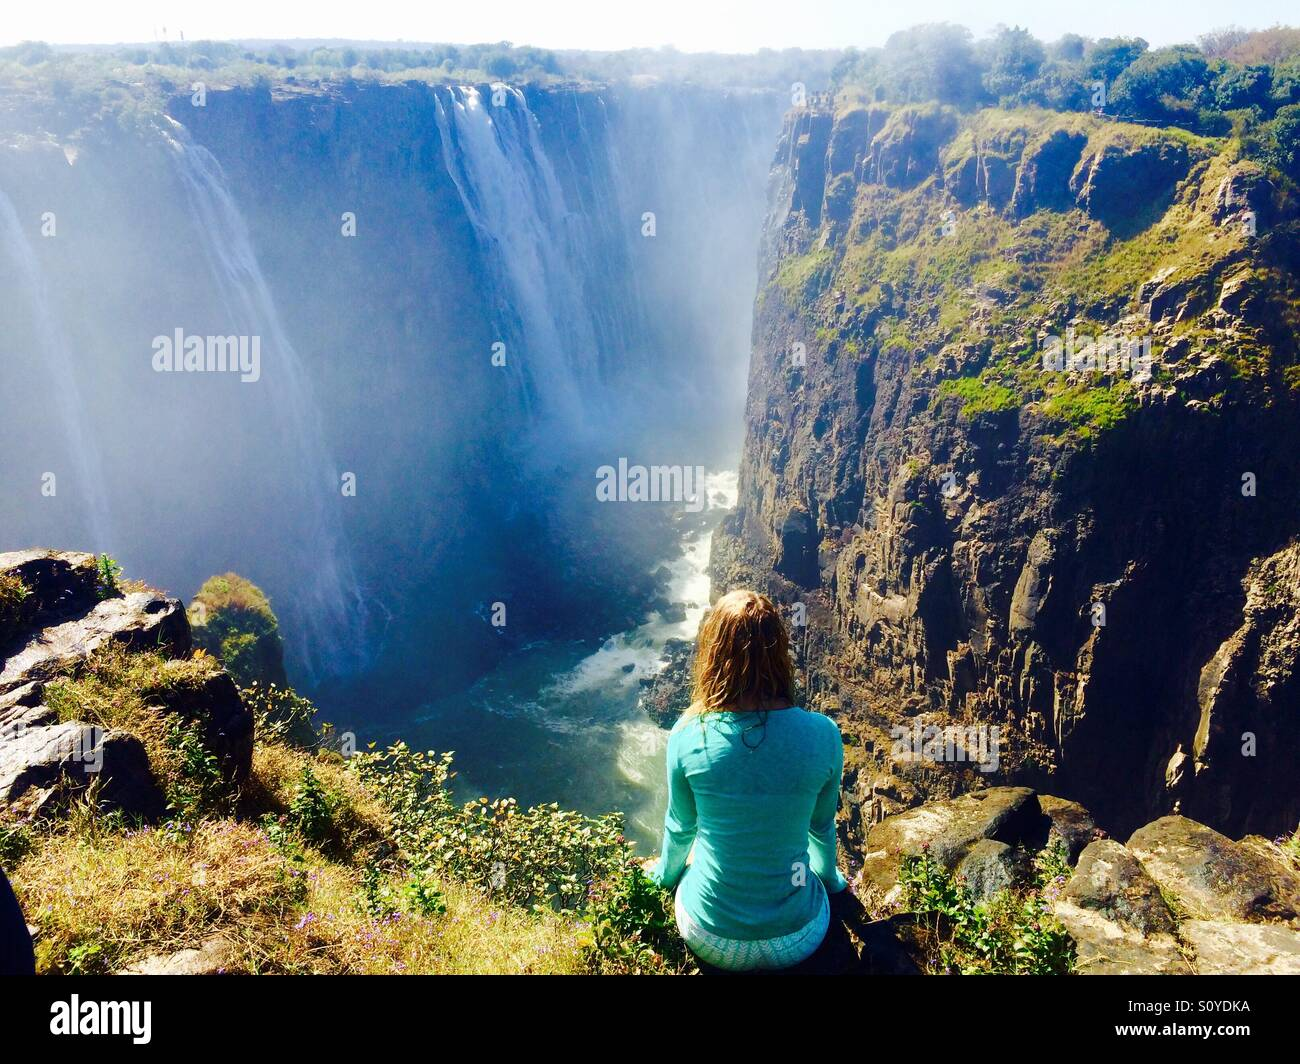 Walking in the footsteps of my grandparents - Victoria falls - South Africa Stock Photo